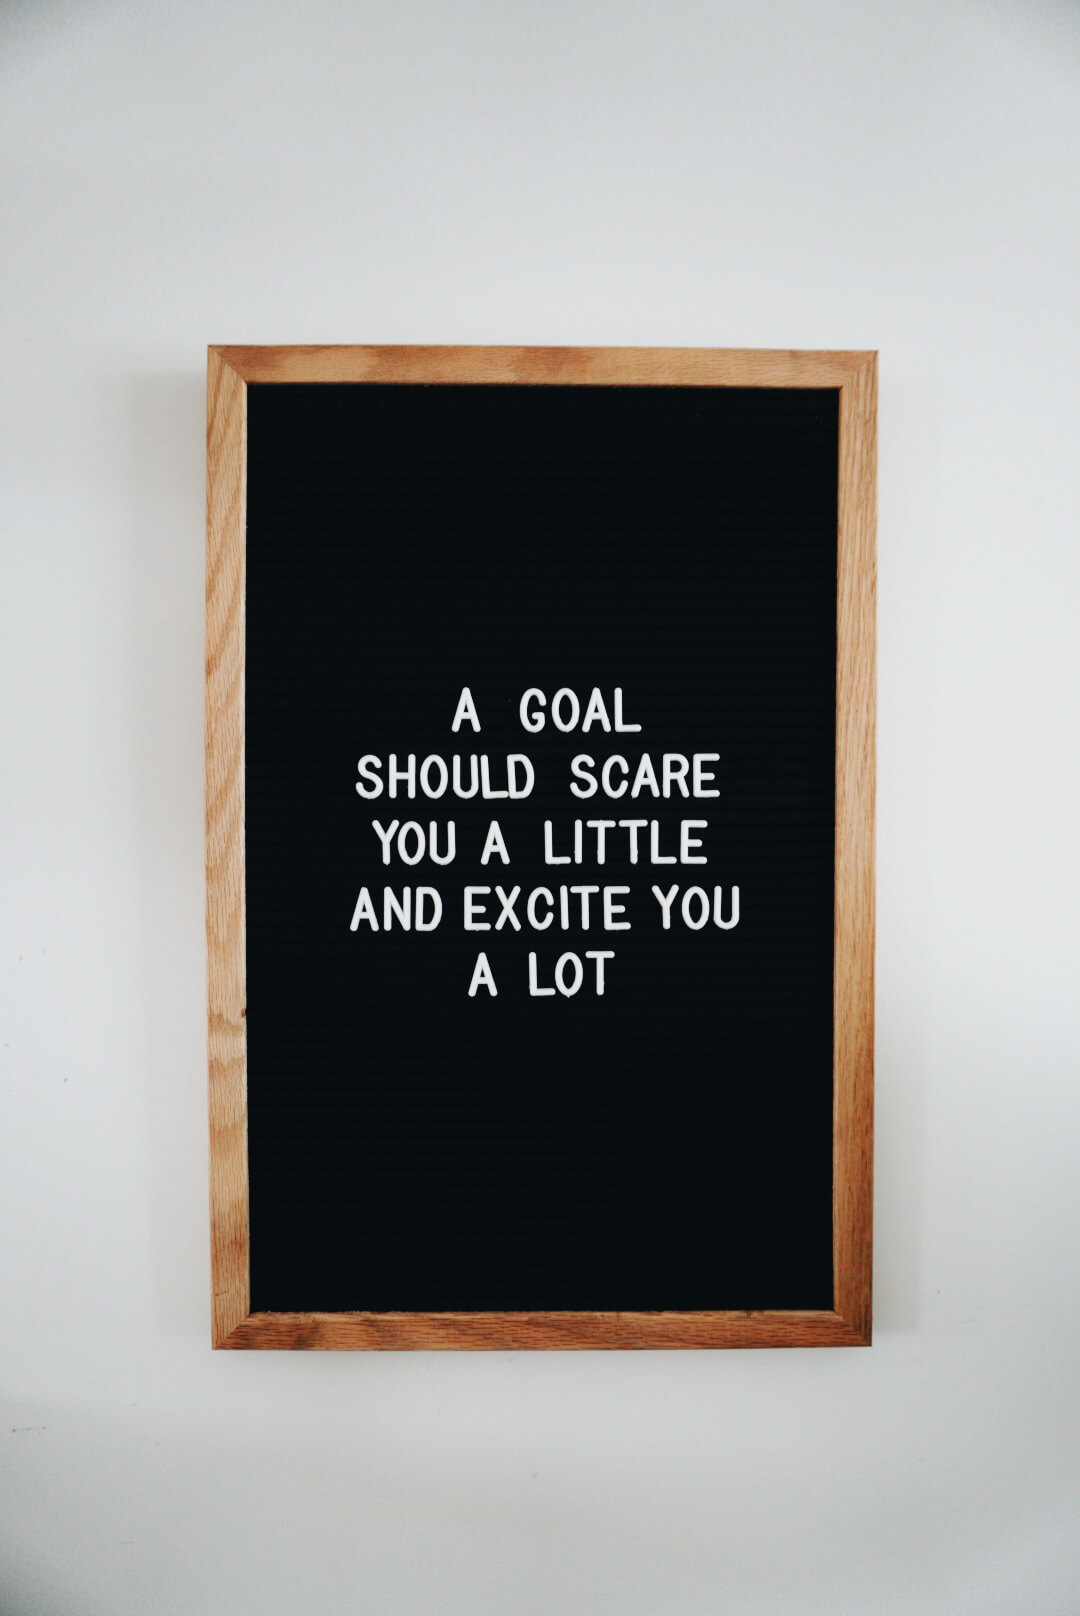 A goal should scare you a little and excite you a lot